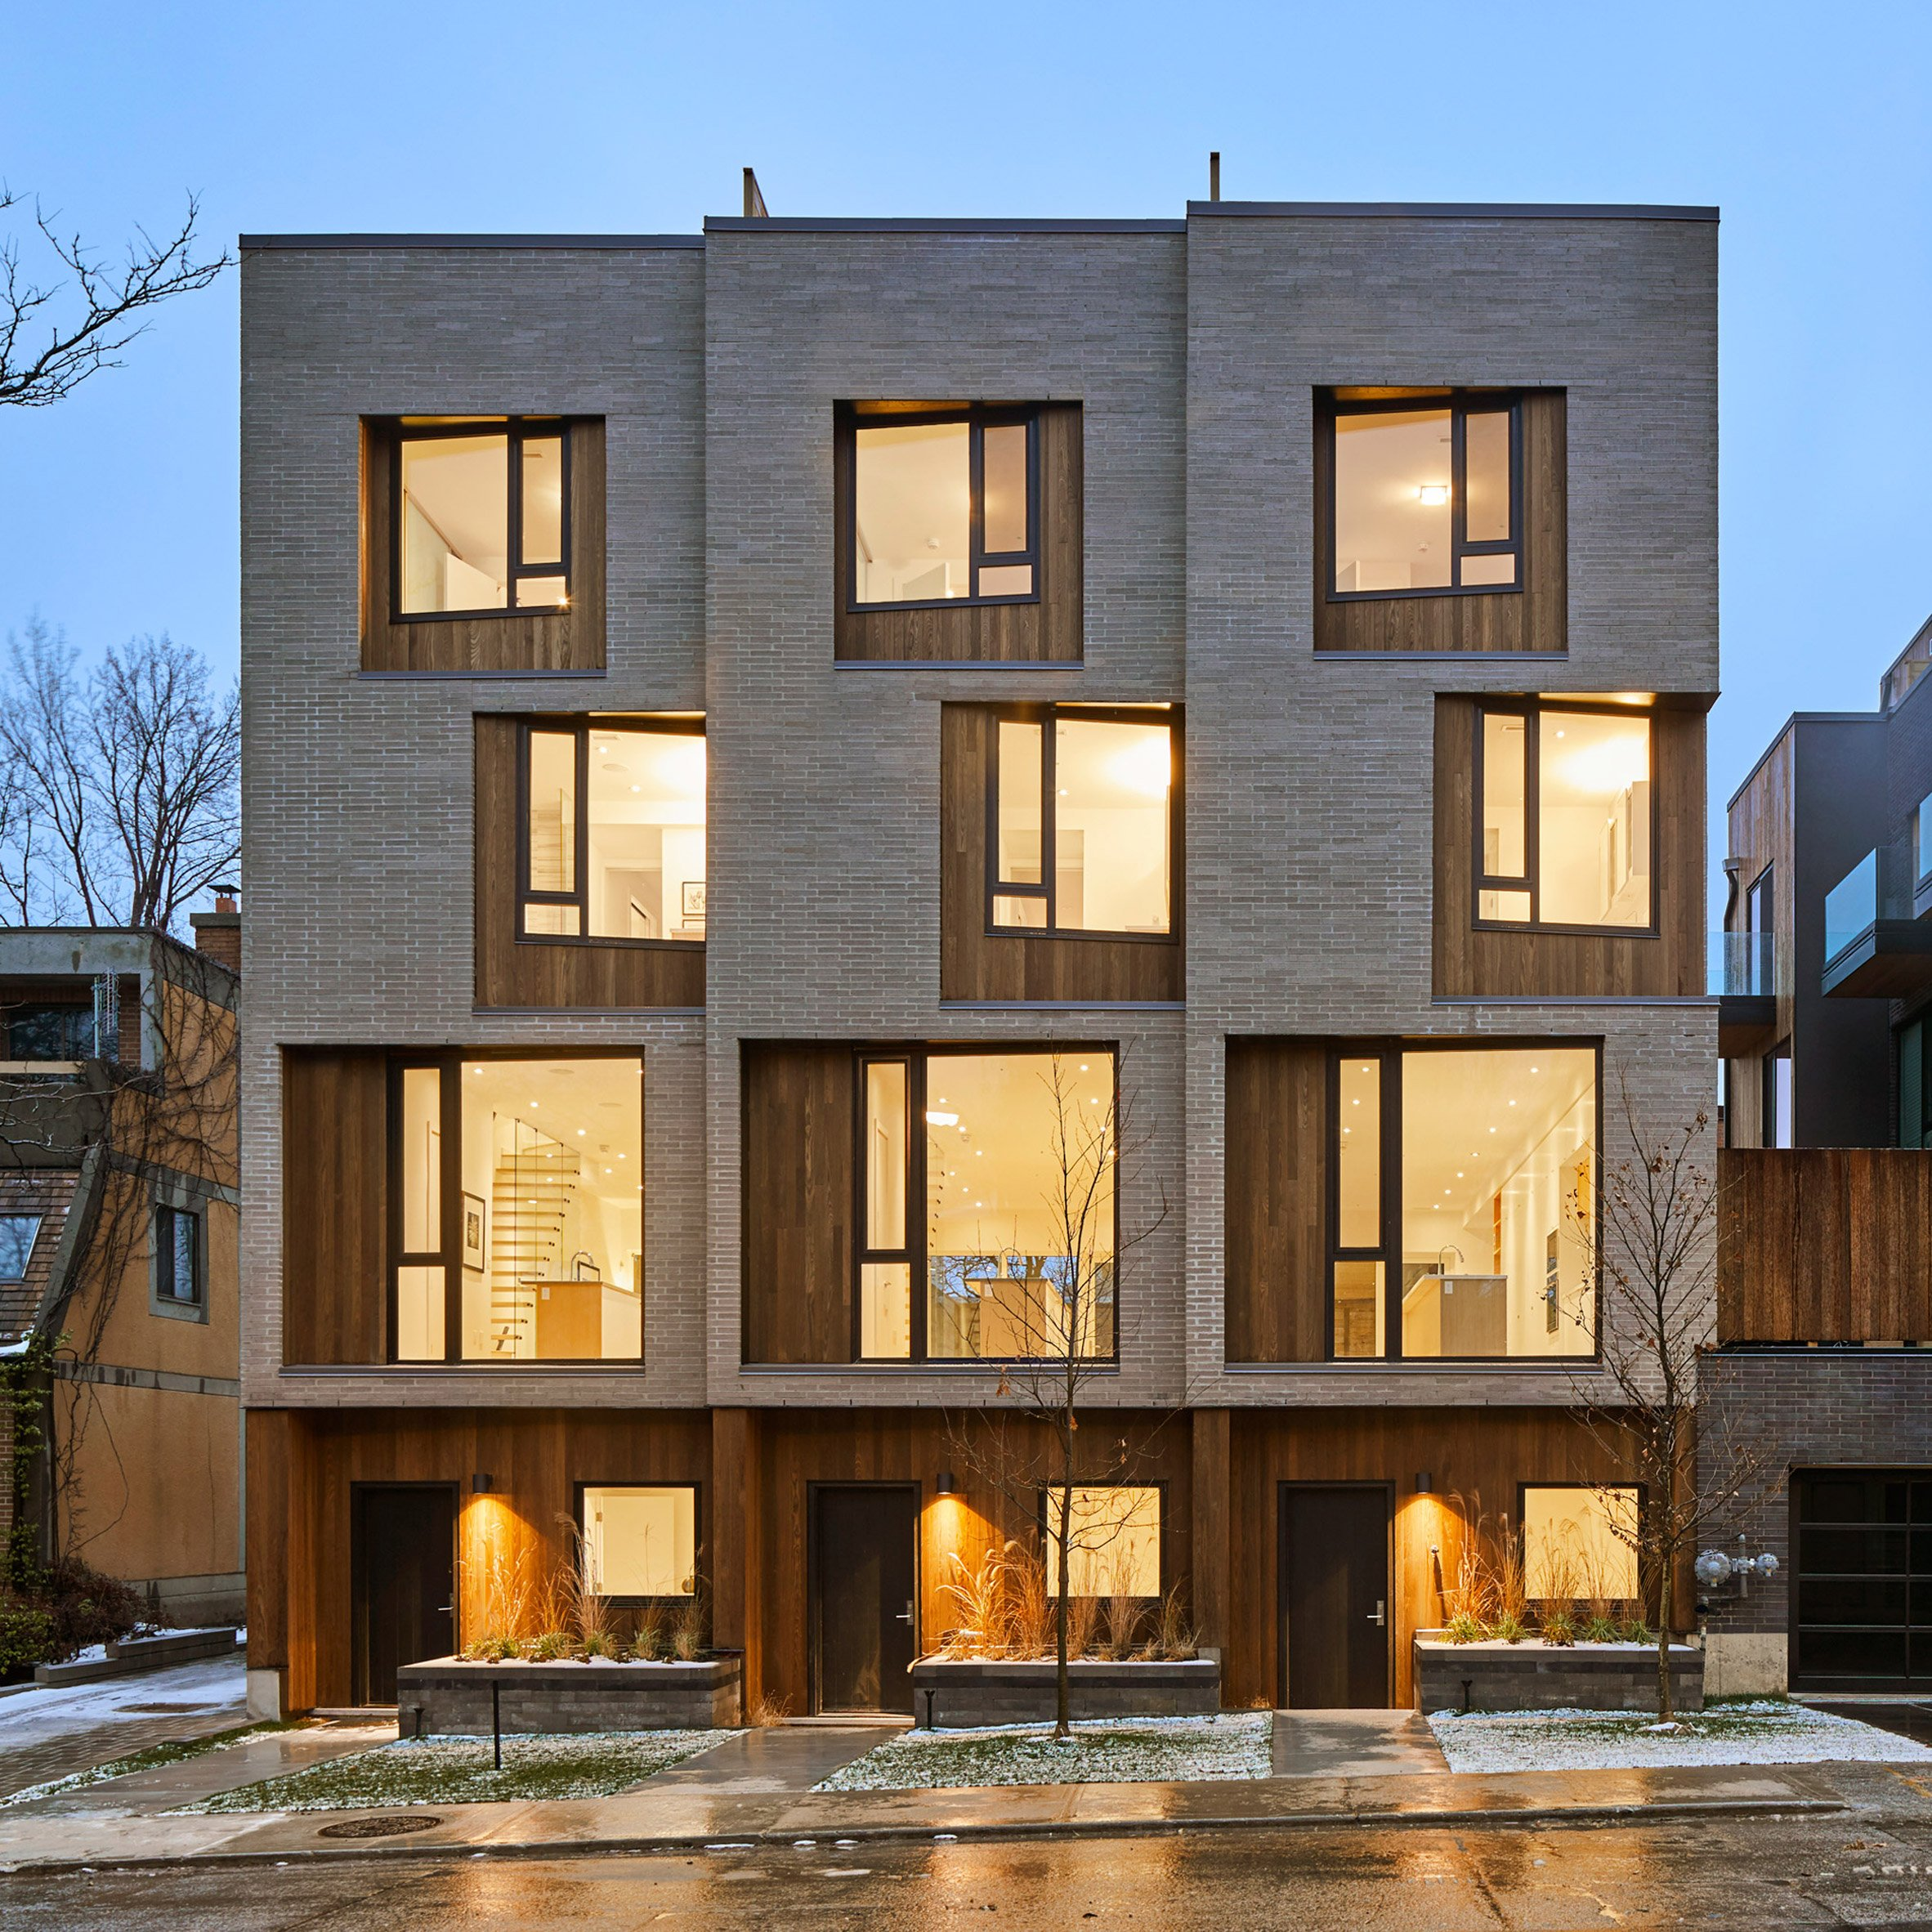 Batay-Csorba animates facades of Toronto townhouses with angled windows